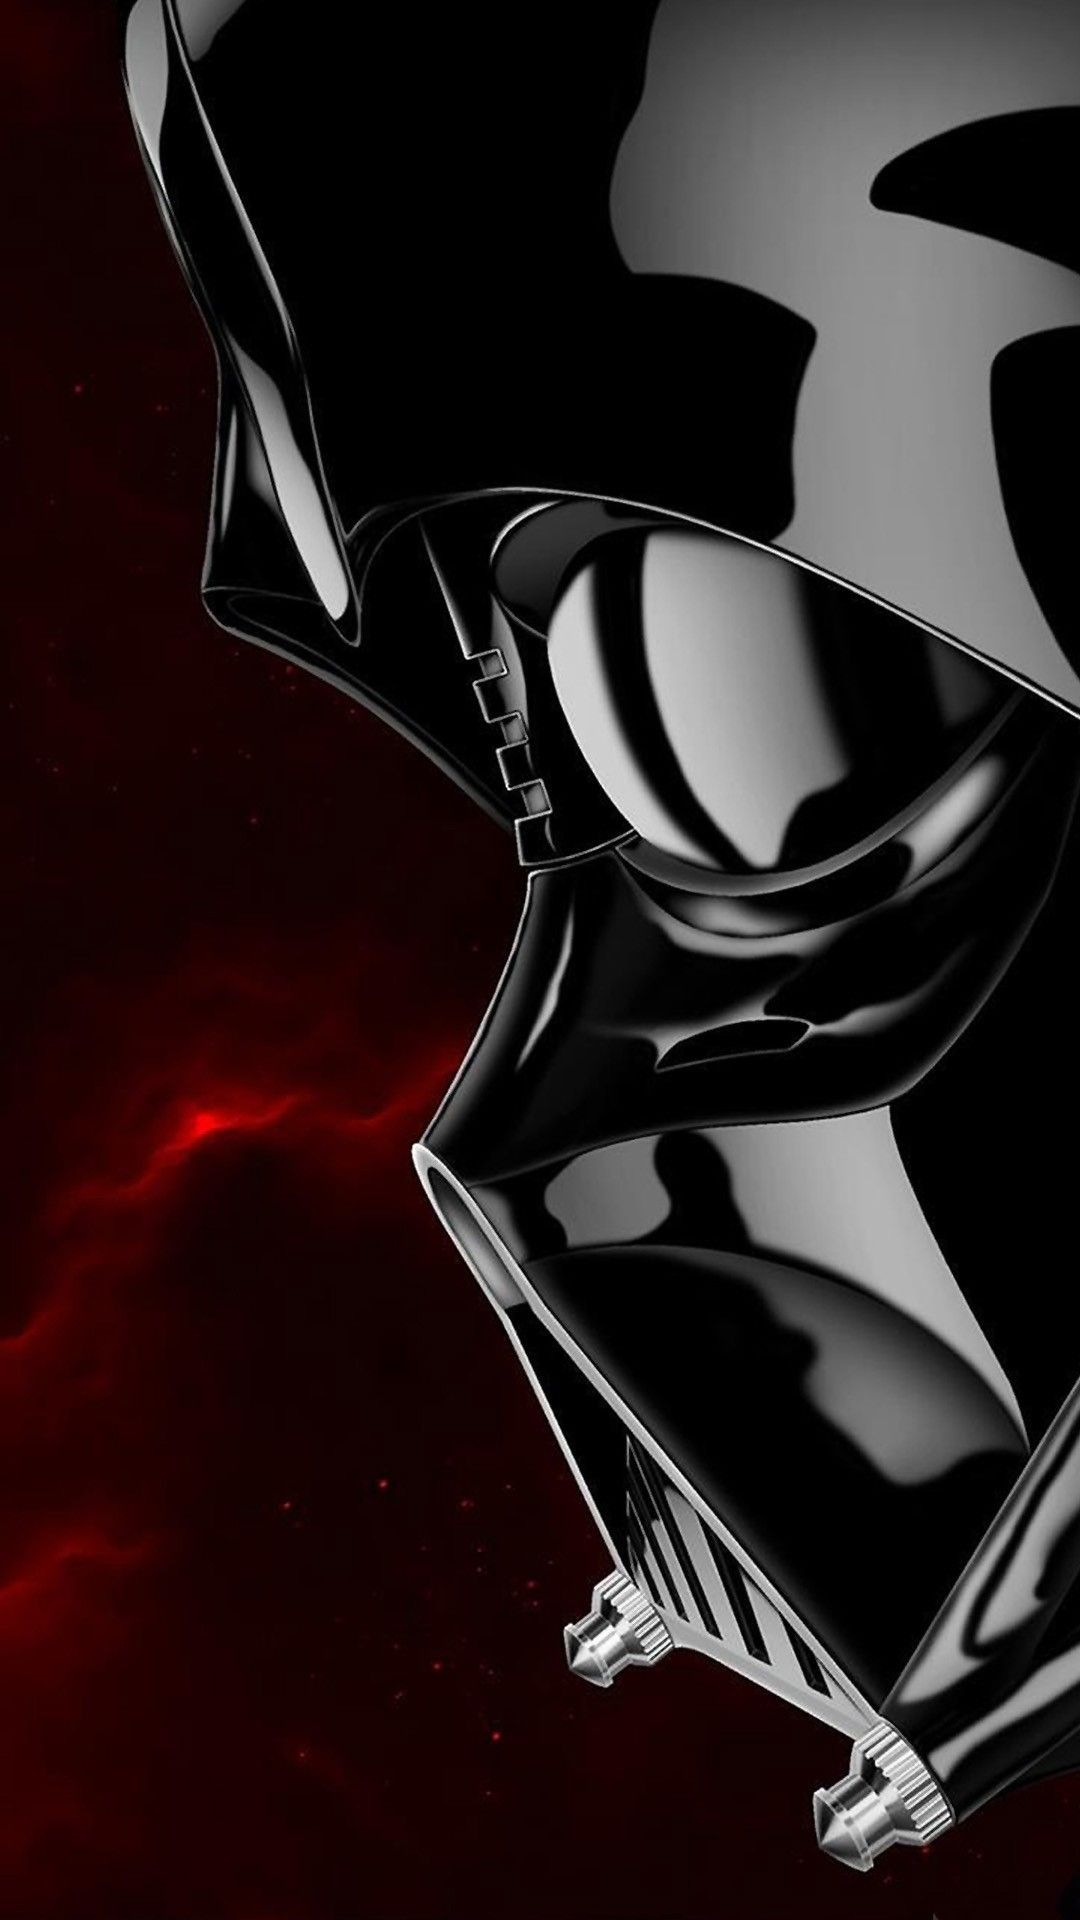 Mandalorian Emblem Hd Wallpaper Android In 2020 Star Wars Illustration Star Wars Wallpaper Vader Star Wars